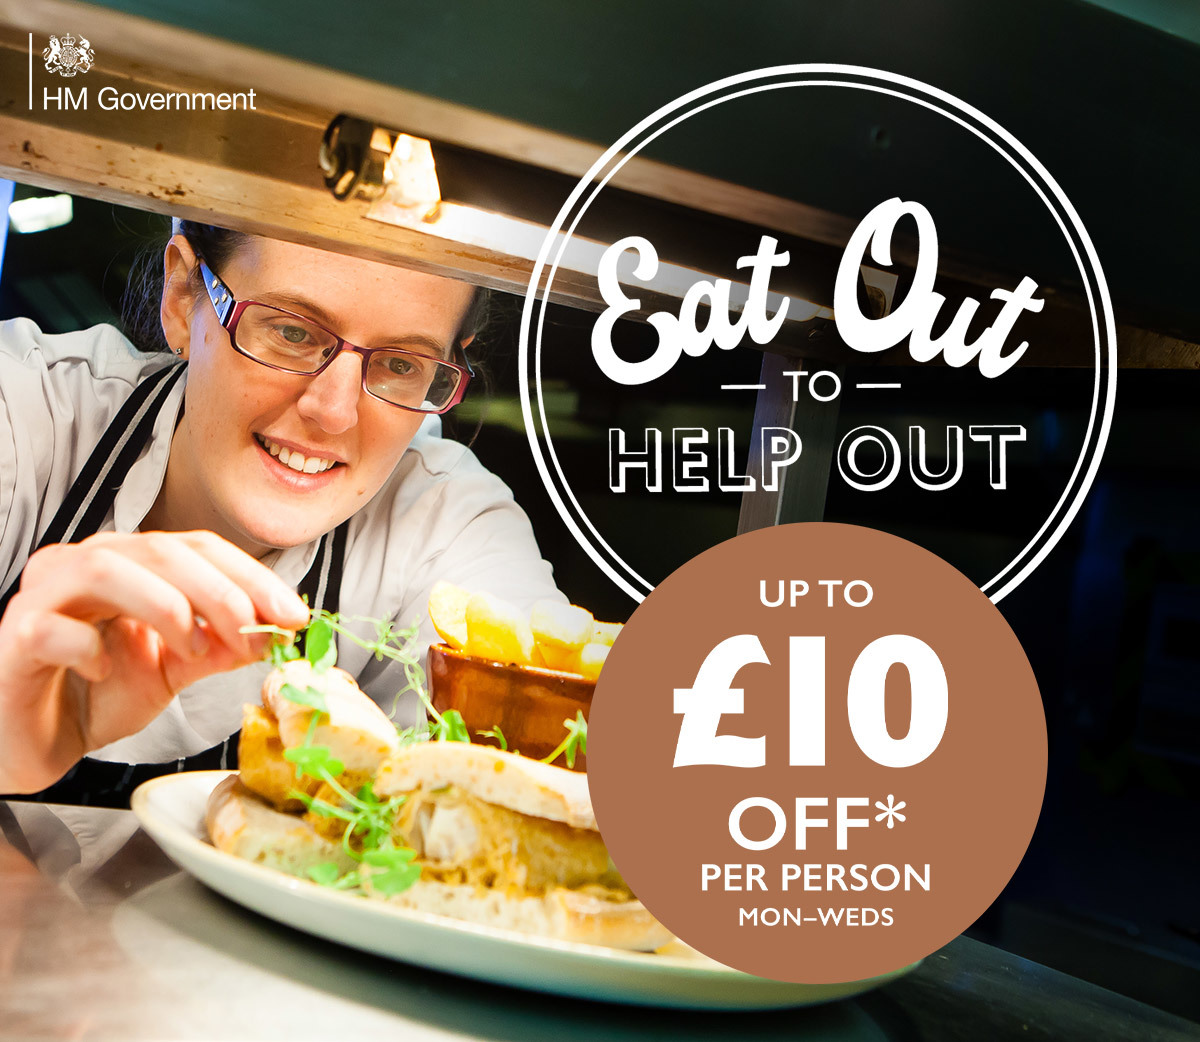 Enjoy up to ?10 off per person on food and soft drinks, Mon-Wed, until 31 August.